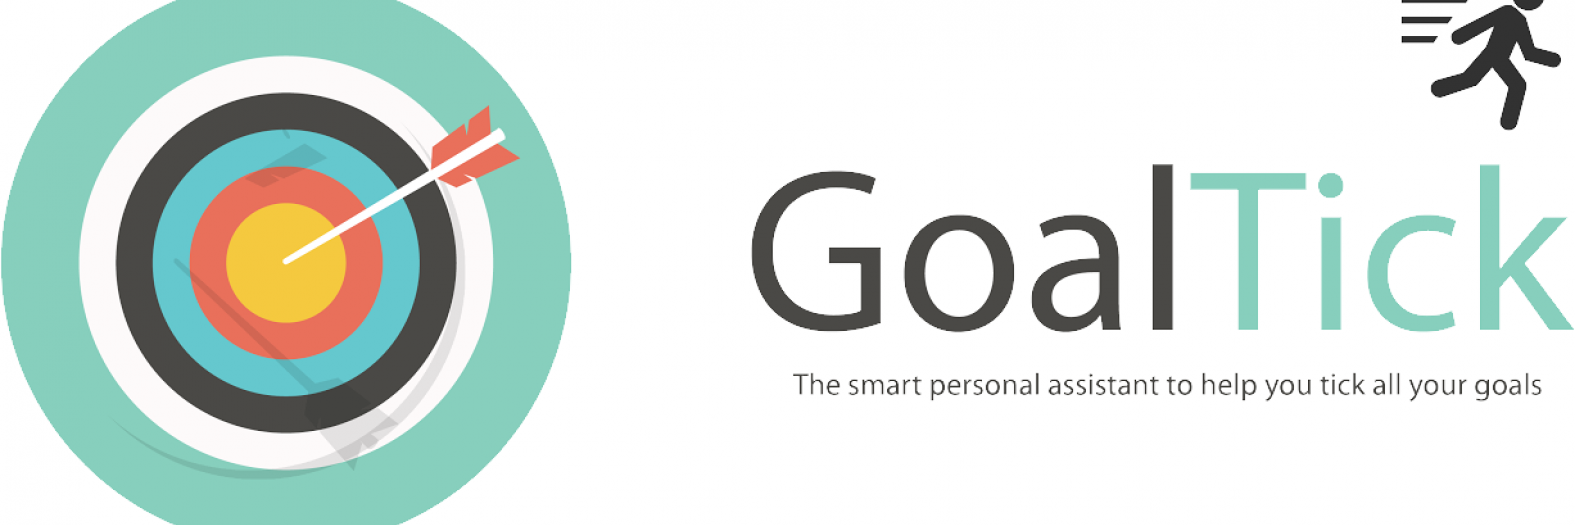 The personal assistant to help you tick all your fitness goals!